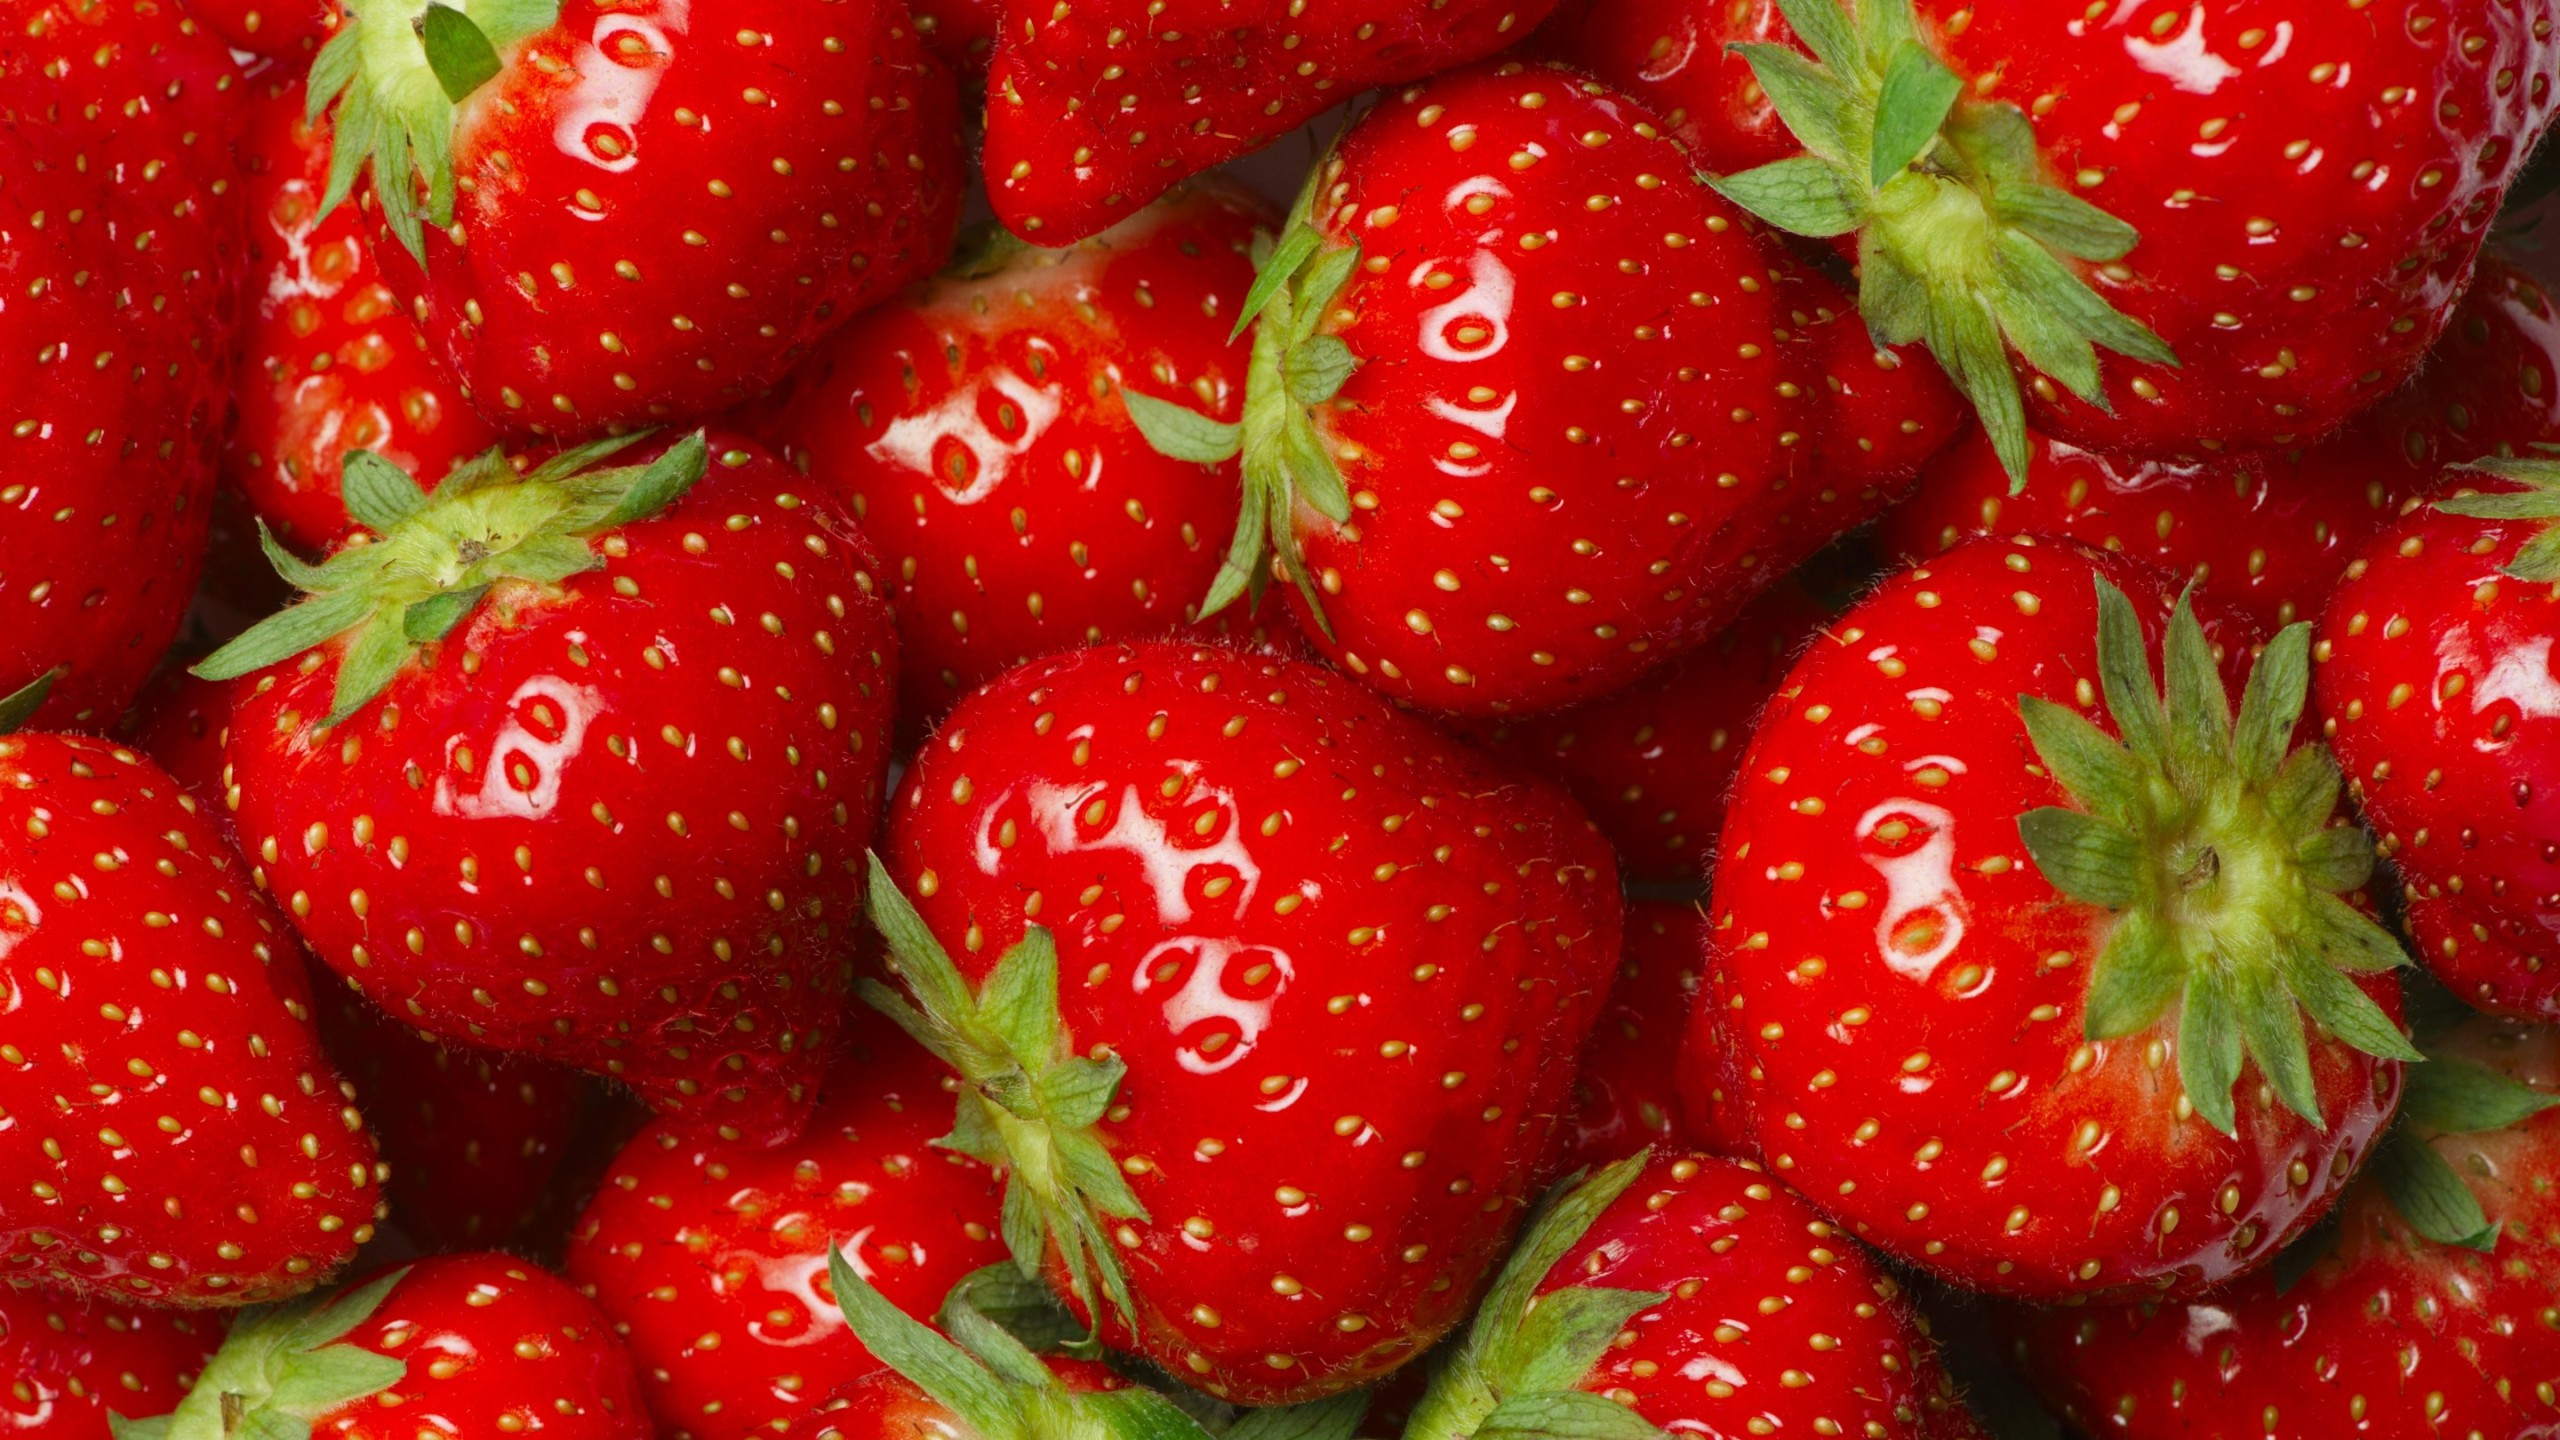 70194250-strawberry-wallpapers_1495203898971.jpg